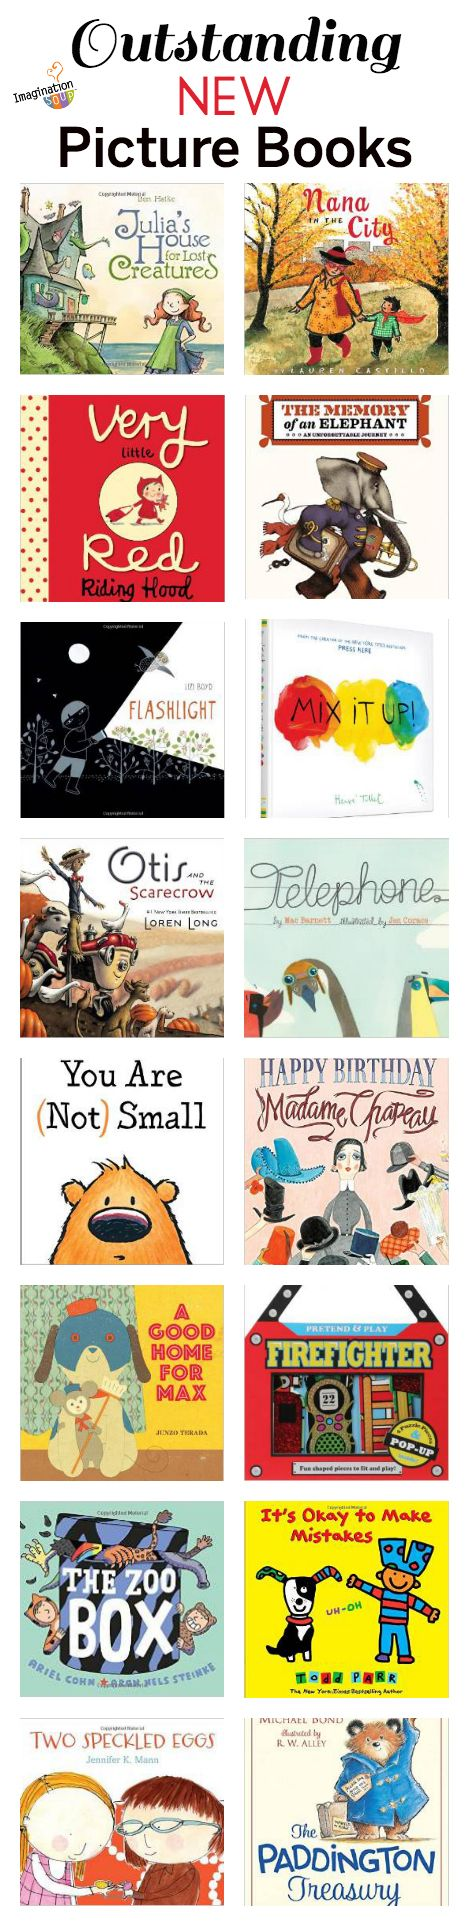 Outstanding new picture books, summer 2014, via Imagination Soup